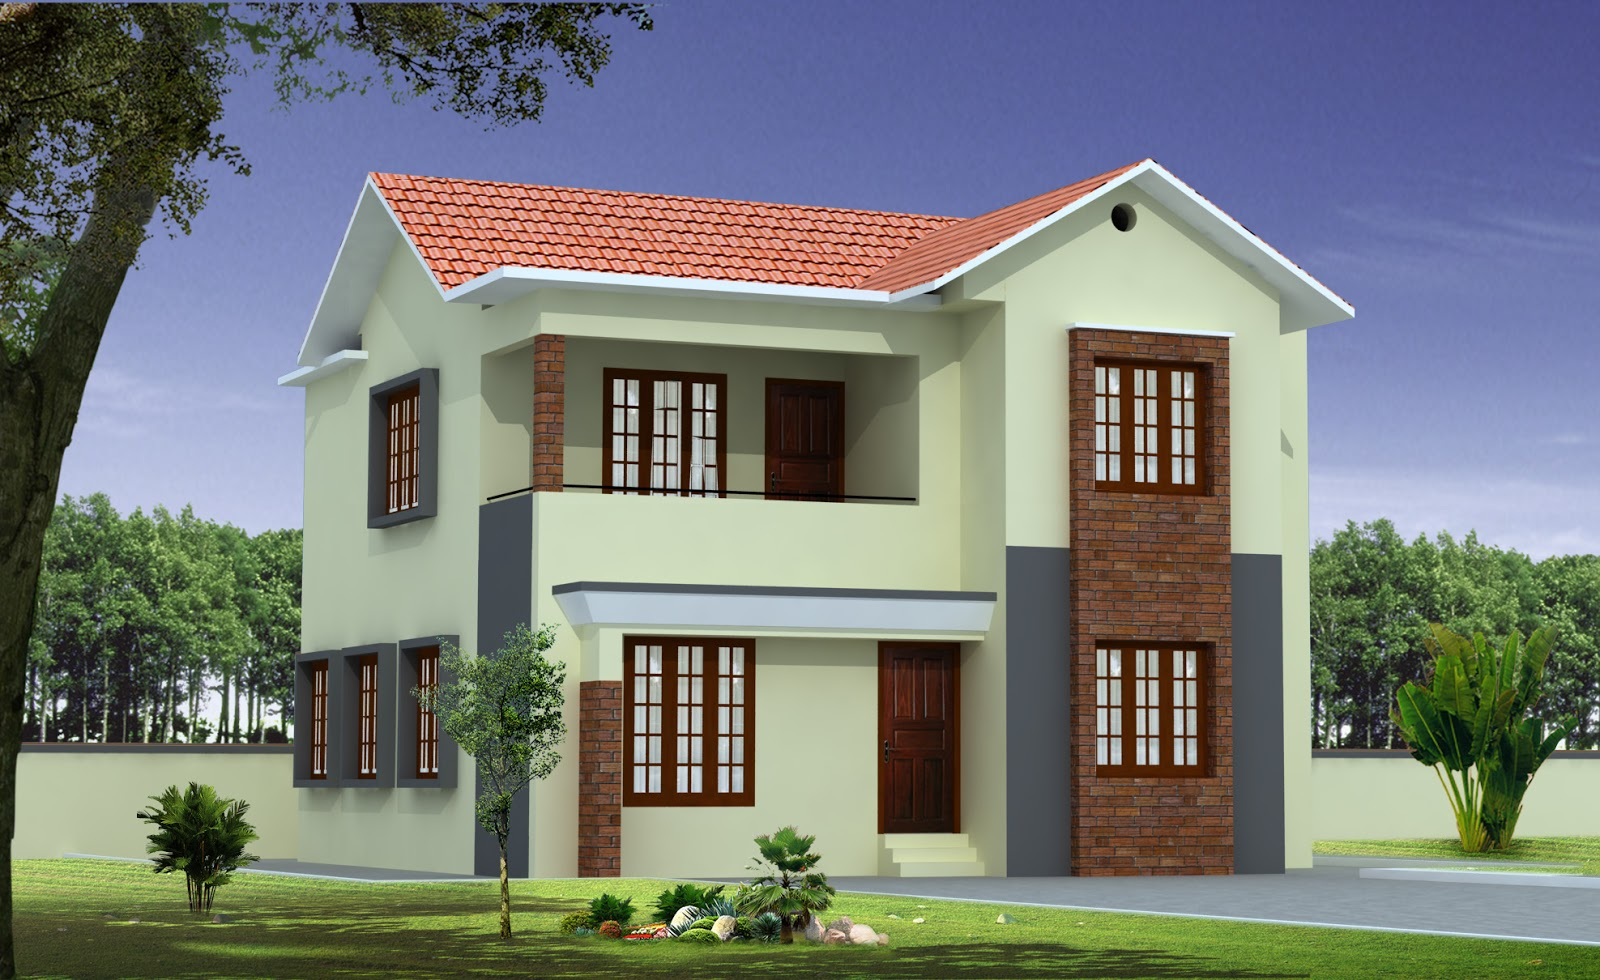 Build a building latest home designs for Blue print homes